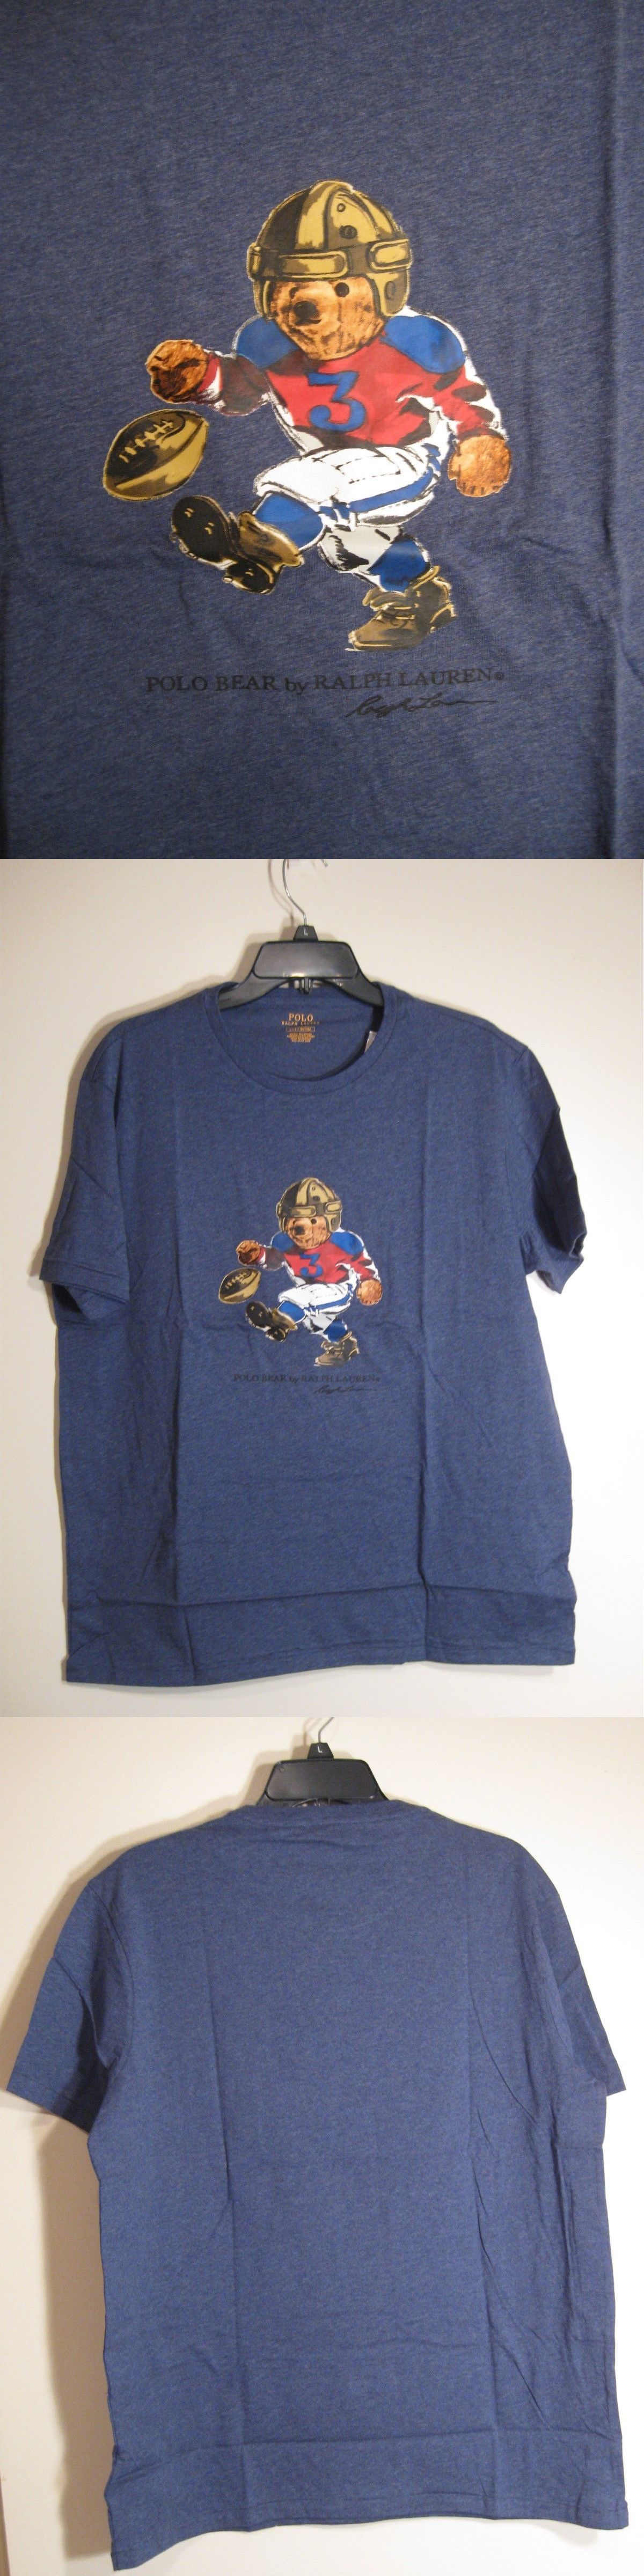 aa61920f T-Shirts 15687: Polo Ralph Lauren Limited Edition Polo Bear Tshirt Nwt  Football Player Blue -> BUY IT NOW ONLY: $59.95 on eBay!